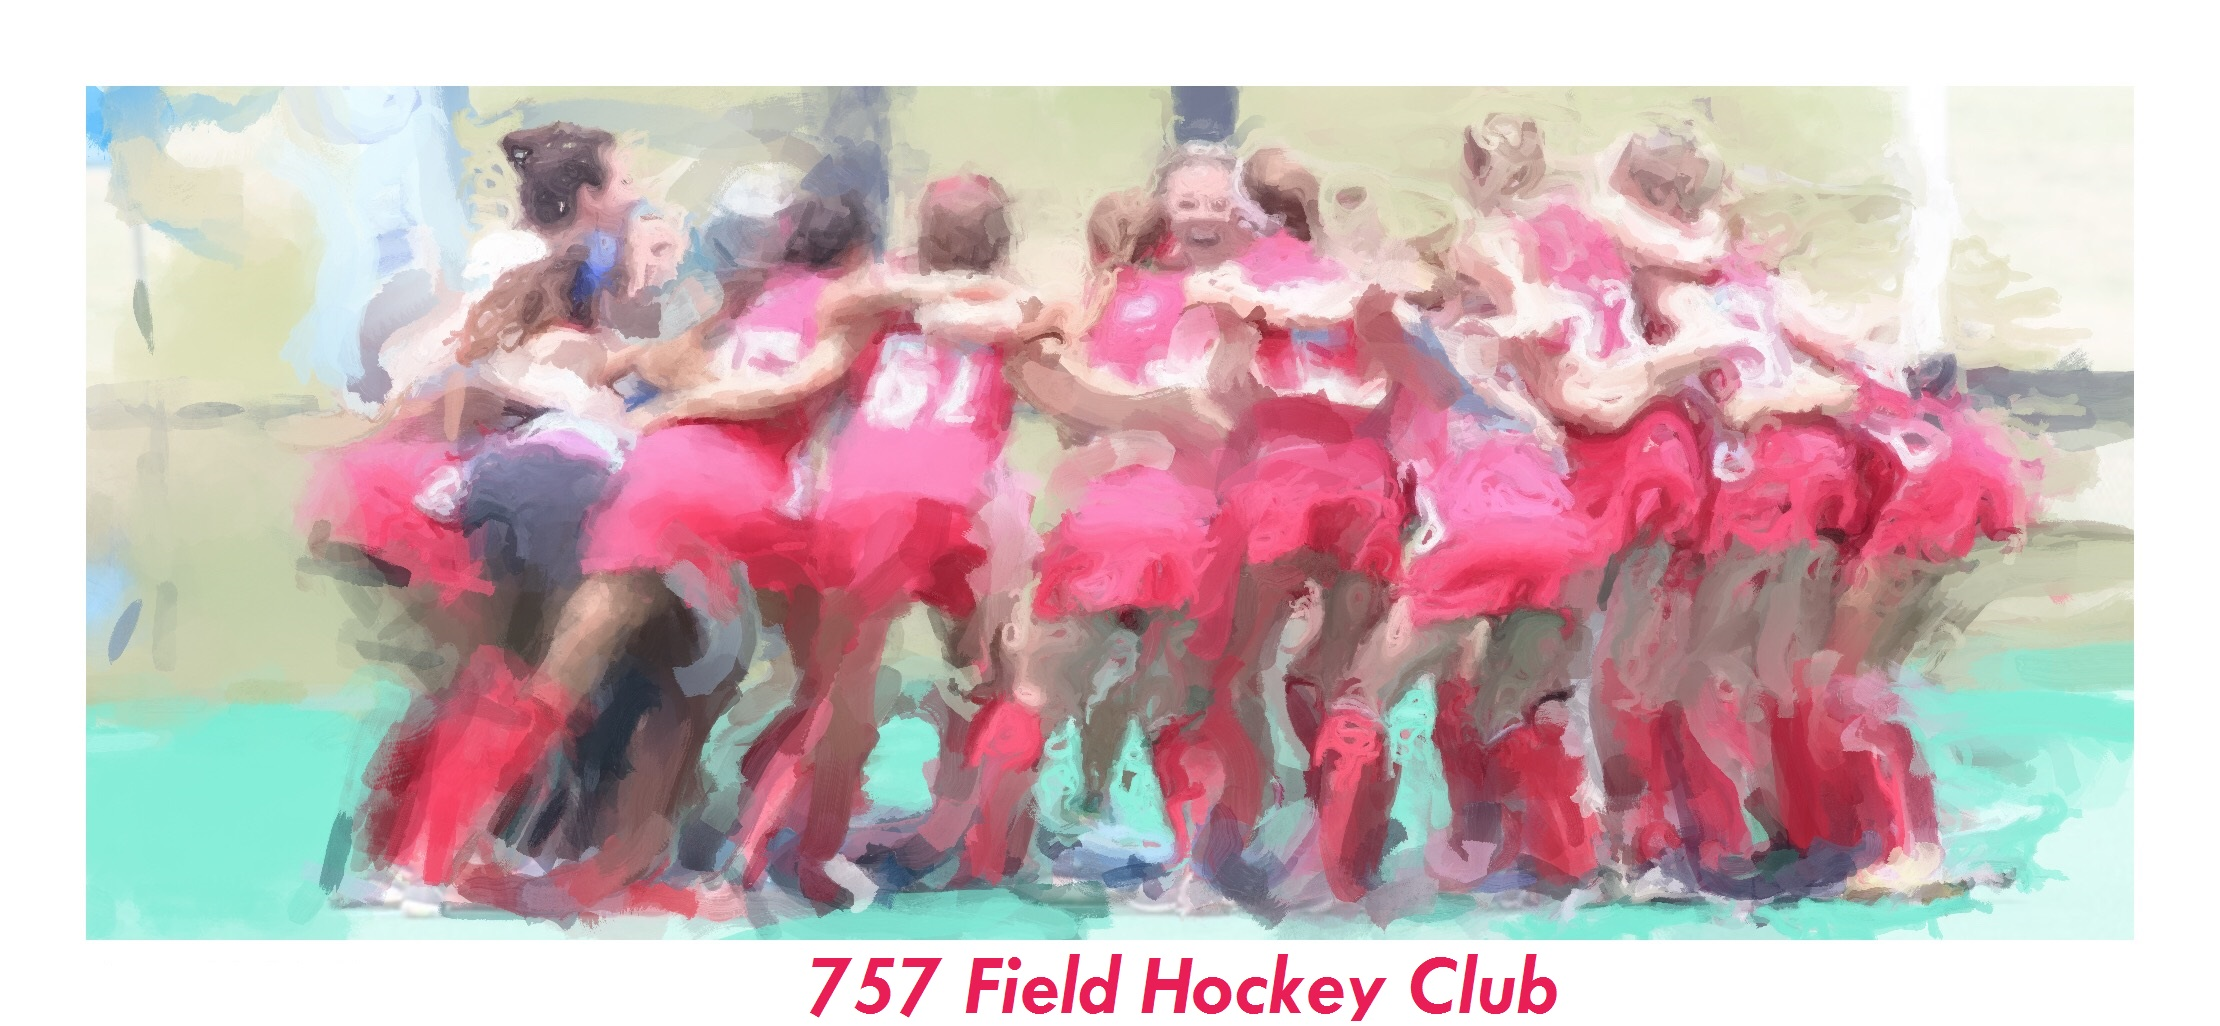 757 Field Hockey Clubs, Field Hockey, Goal, Field